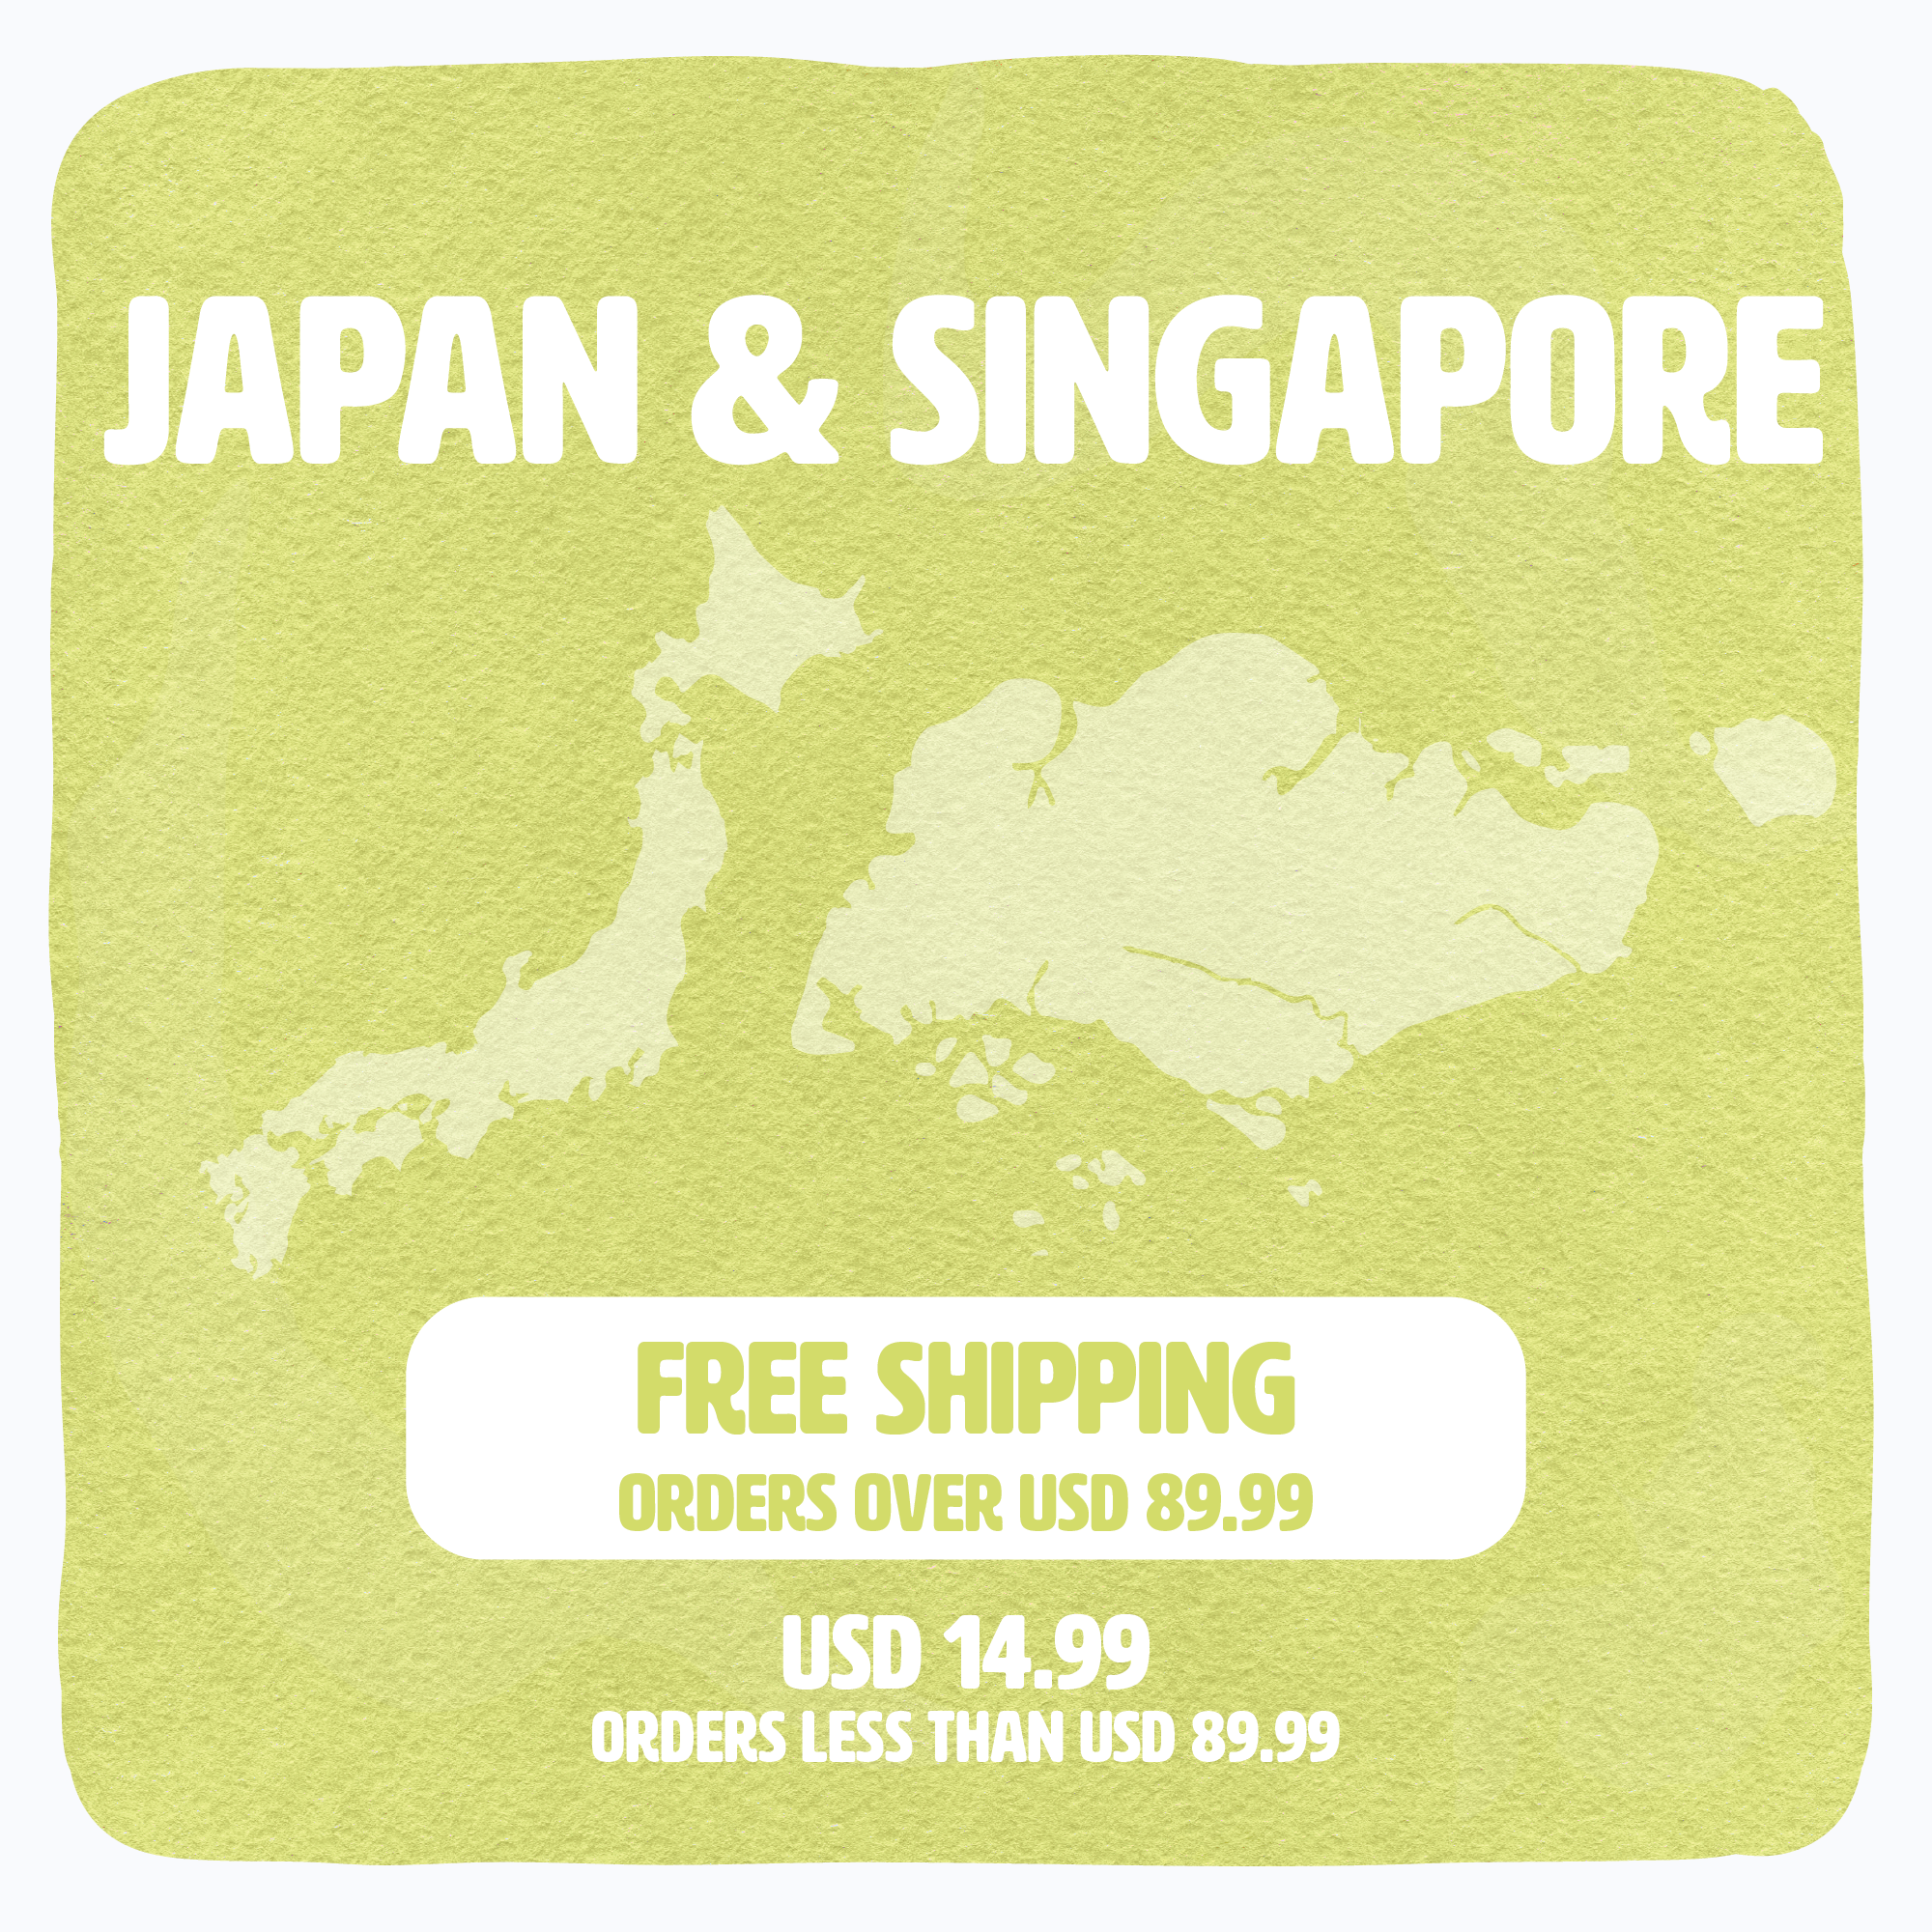 Shipping availability & conditions banner for Japan & Singapore